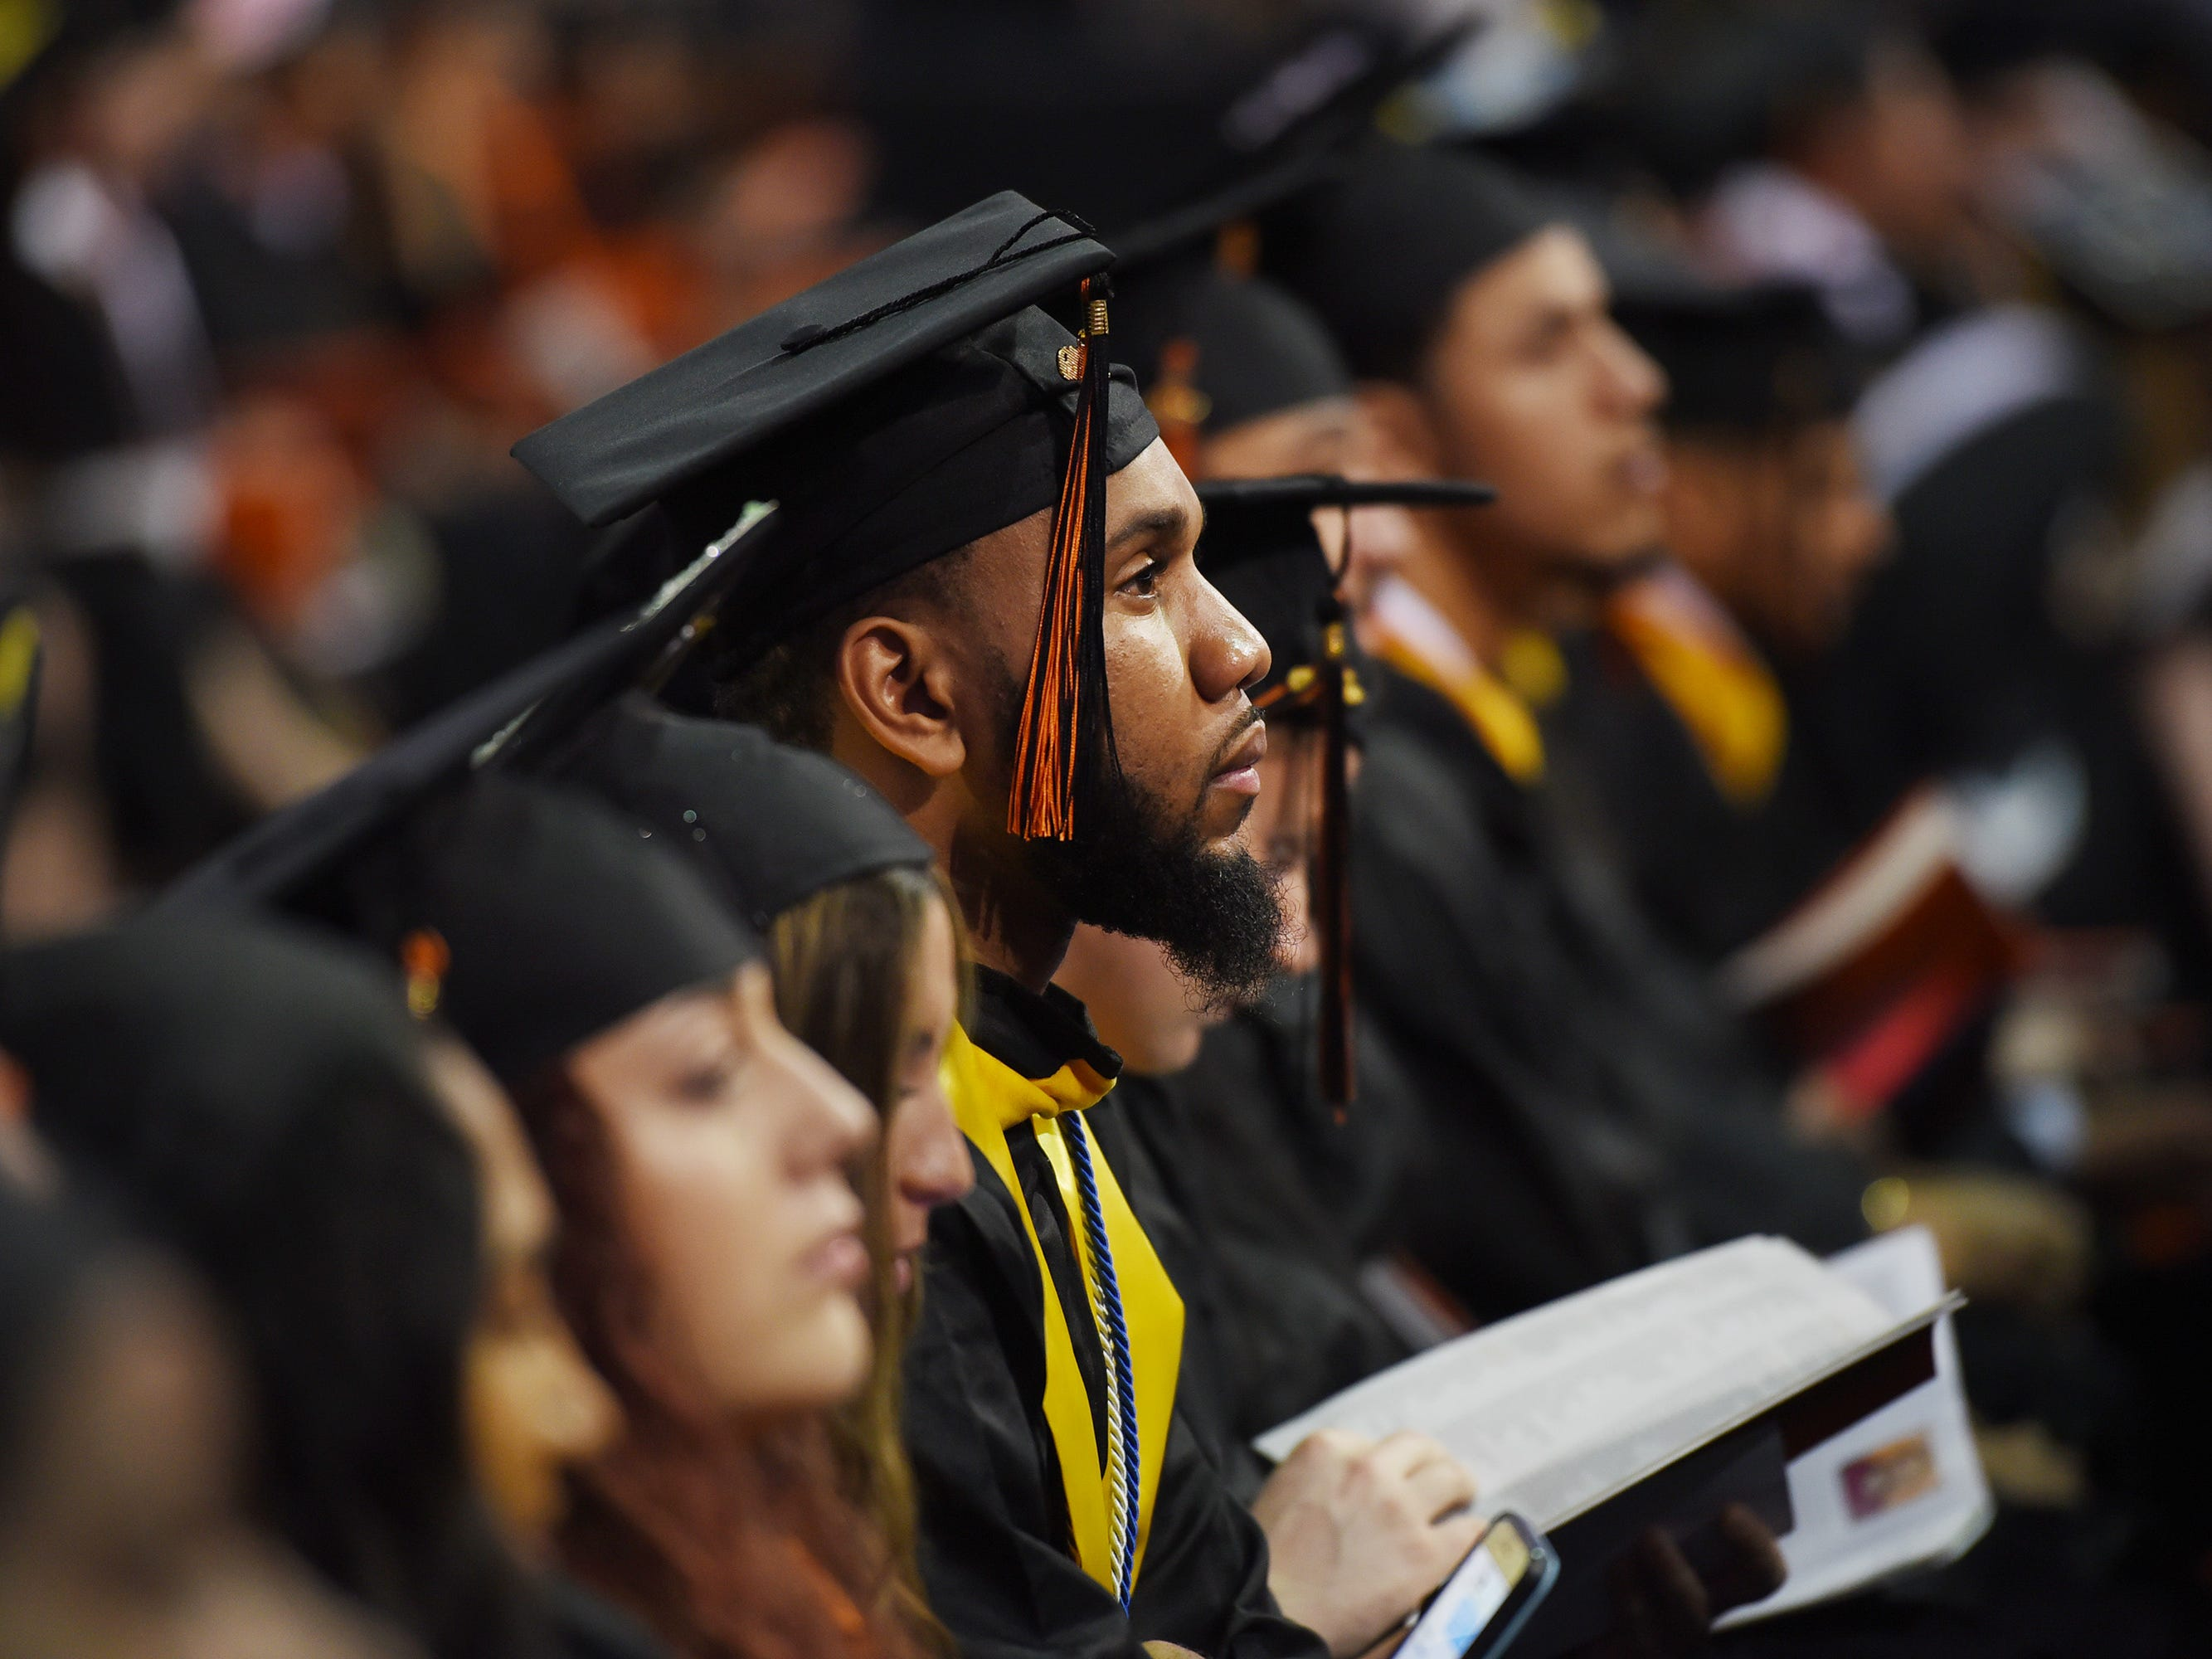 Graduates listen during the William Paterson University 2019 Commencement at the Prudential Center in Newark on 05/15/19.